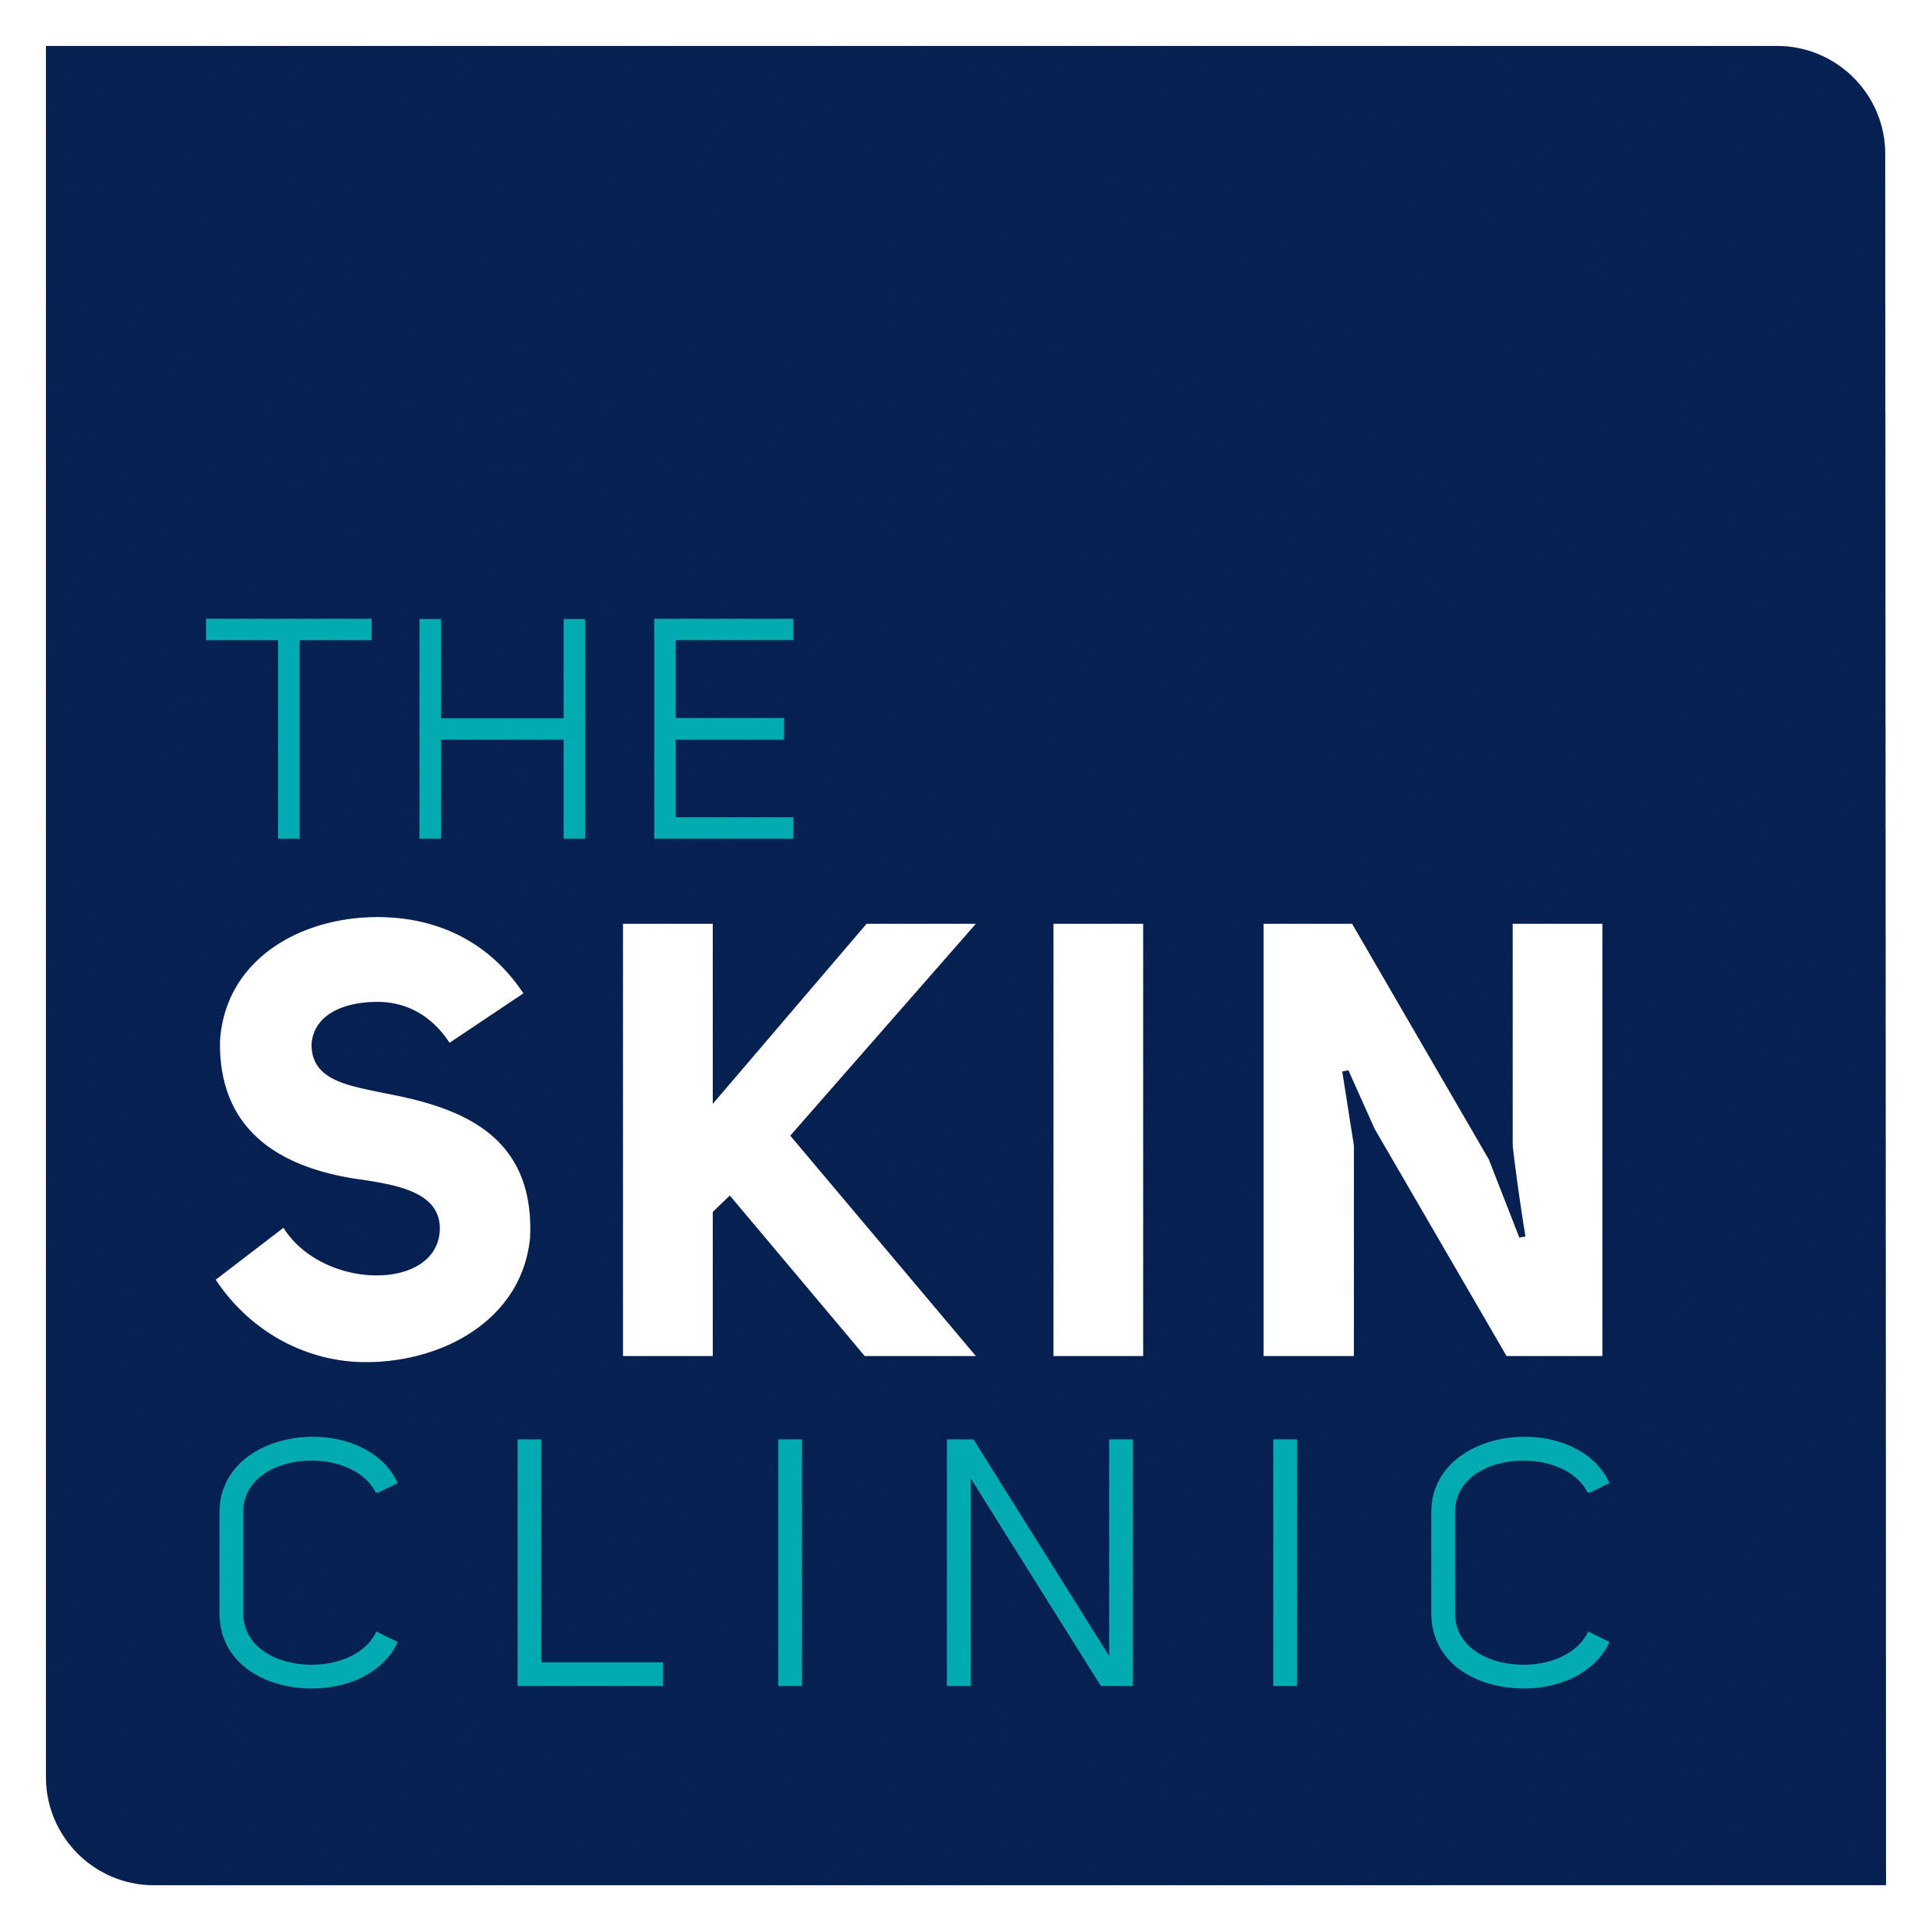 TheSkinClinic.jpg